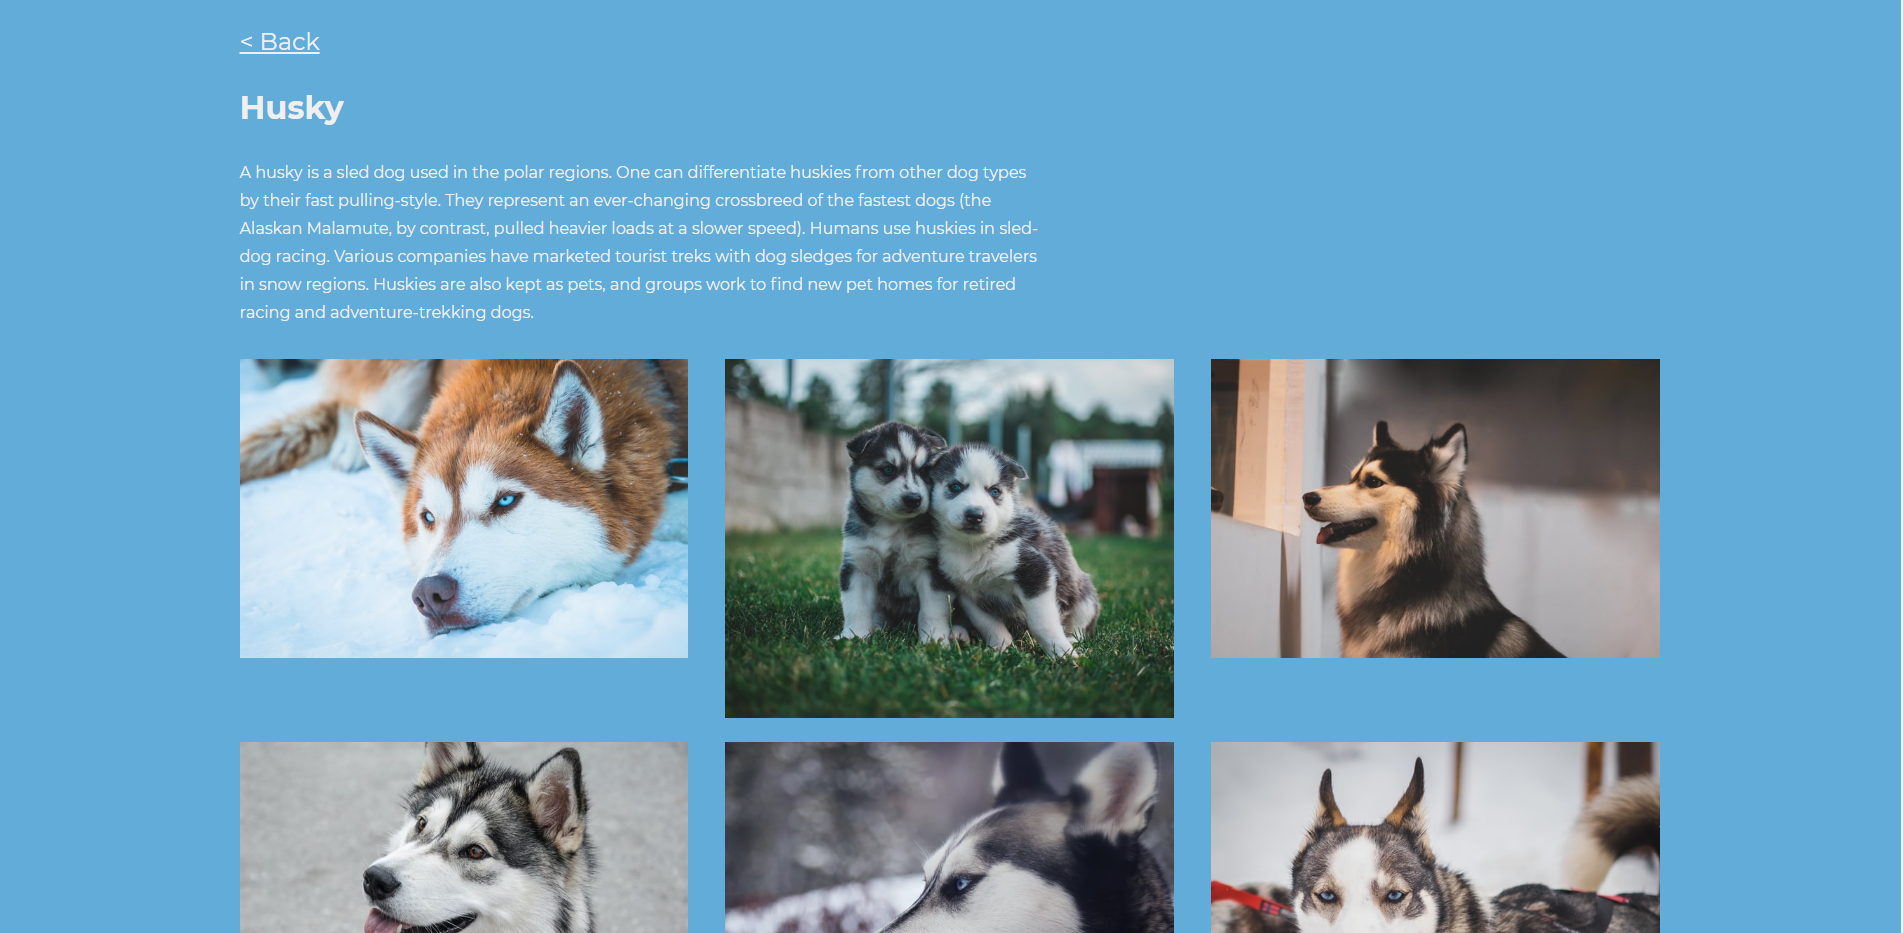 Demo Husky Page from local